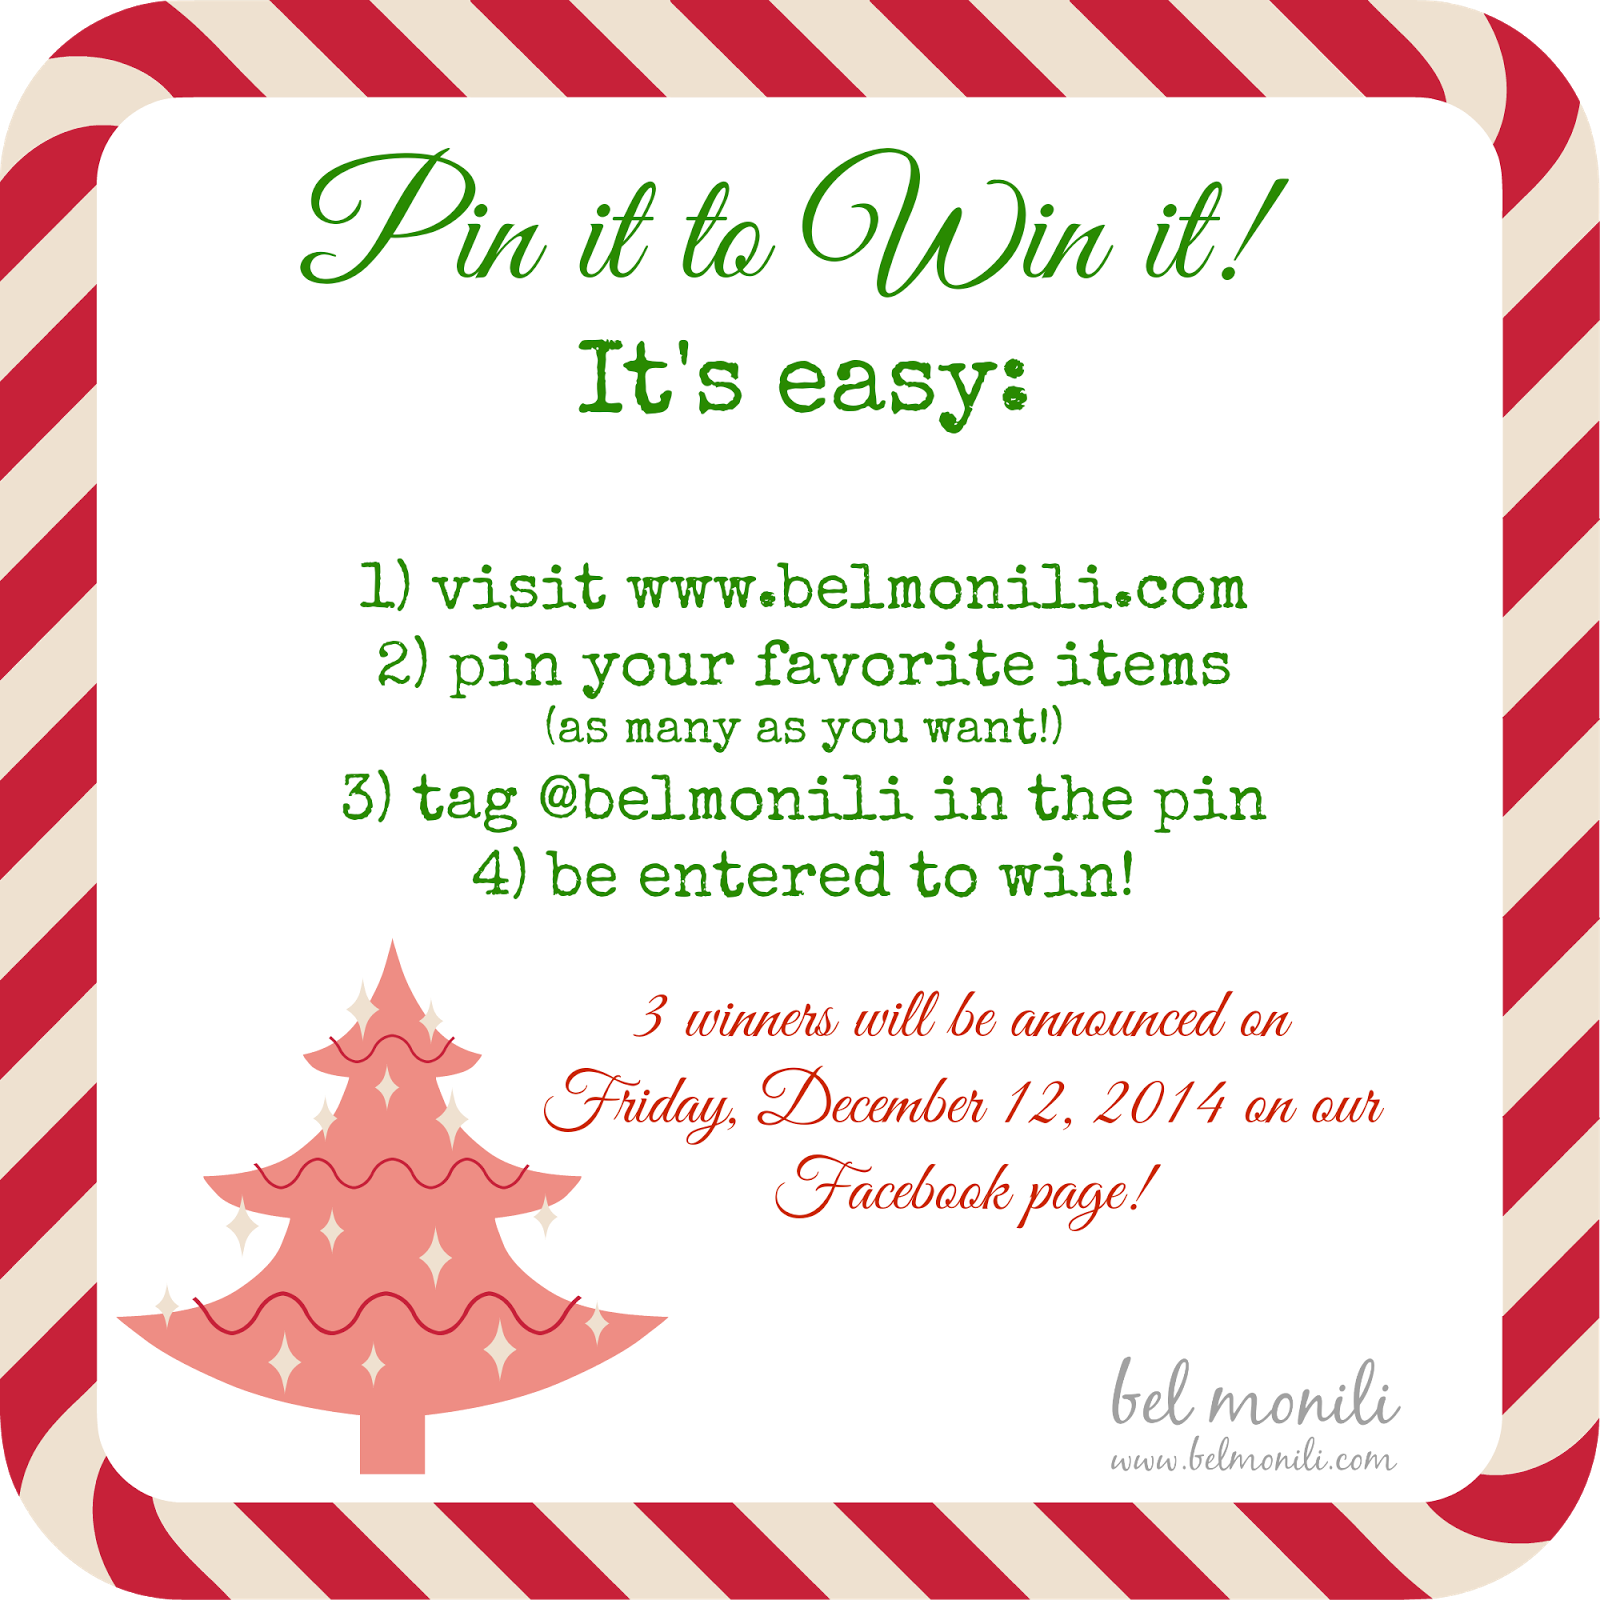 bel monili, pinterest, pin it to win it, giveaway, holiday gift, teacher gift, pittsburgh gift, etsy, etsy giveaway